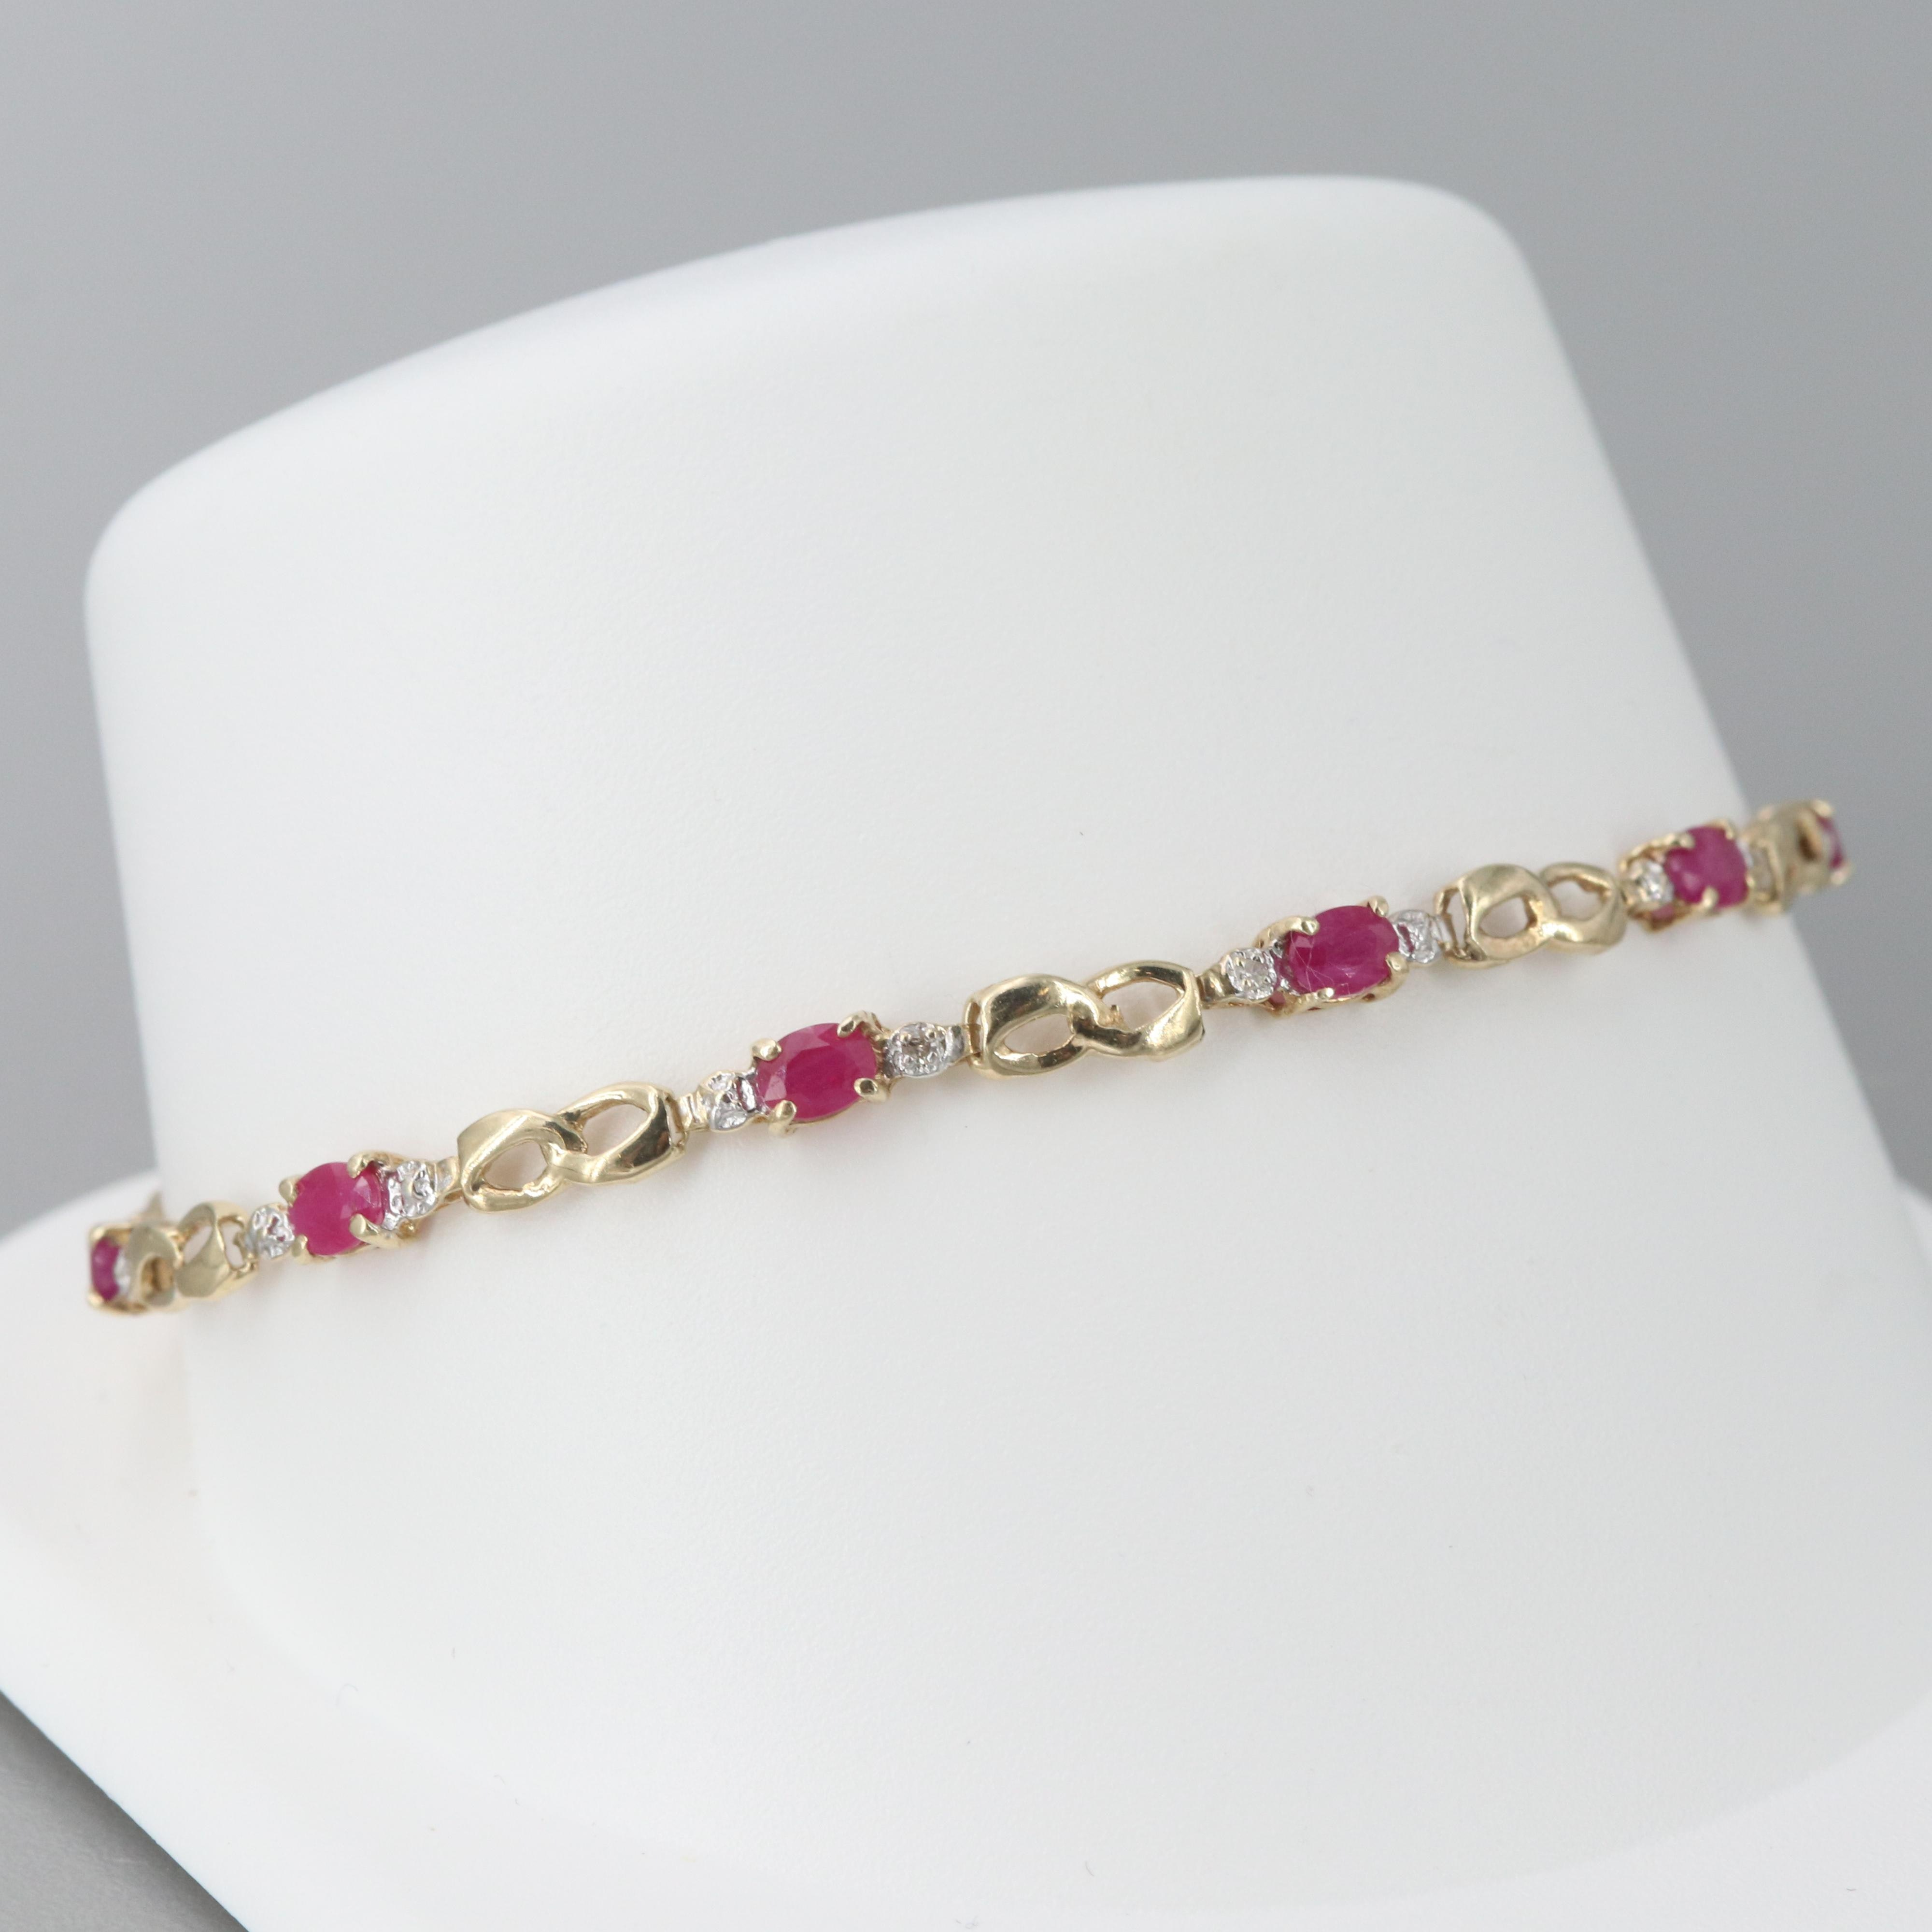 10K Yellow Gold Diamond and Ruby Bracelet